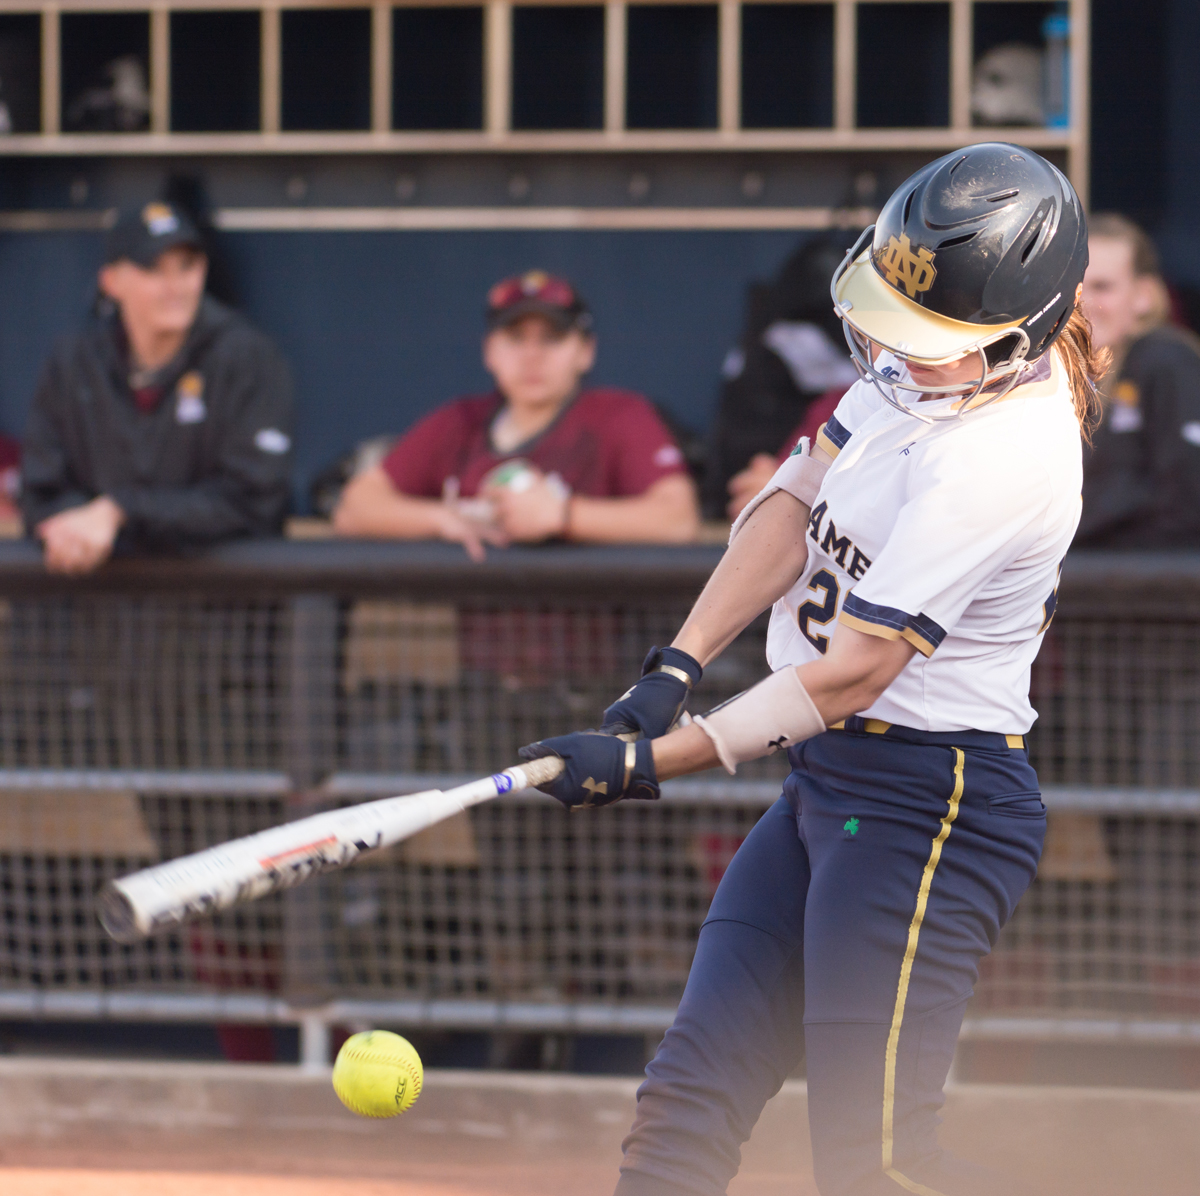 Irish junior Morgan Reed follows through on a swing during Notre Dame's 13-4 win over IUPUI on Apr. 12 at Melissa Cook Stadium.